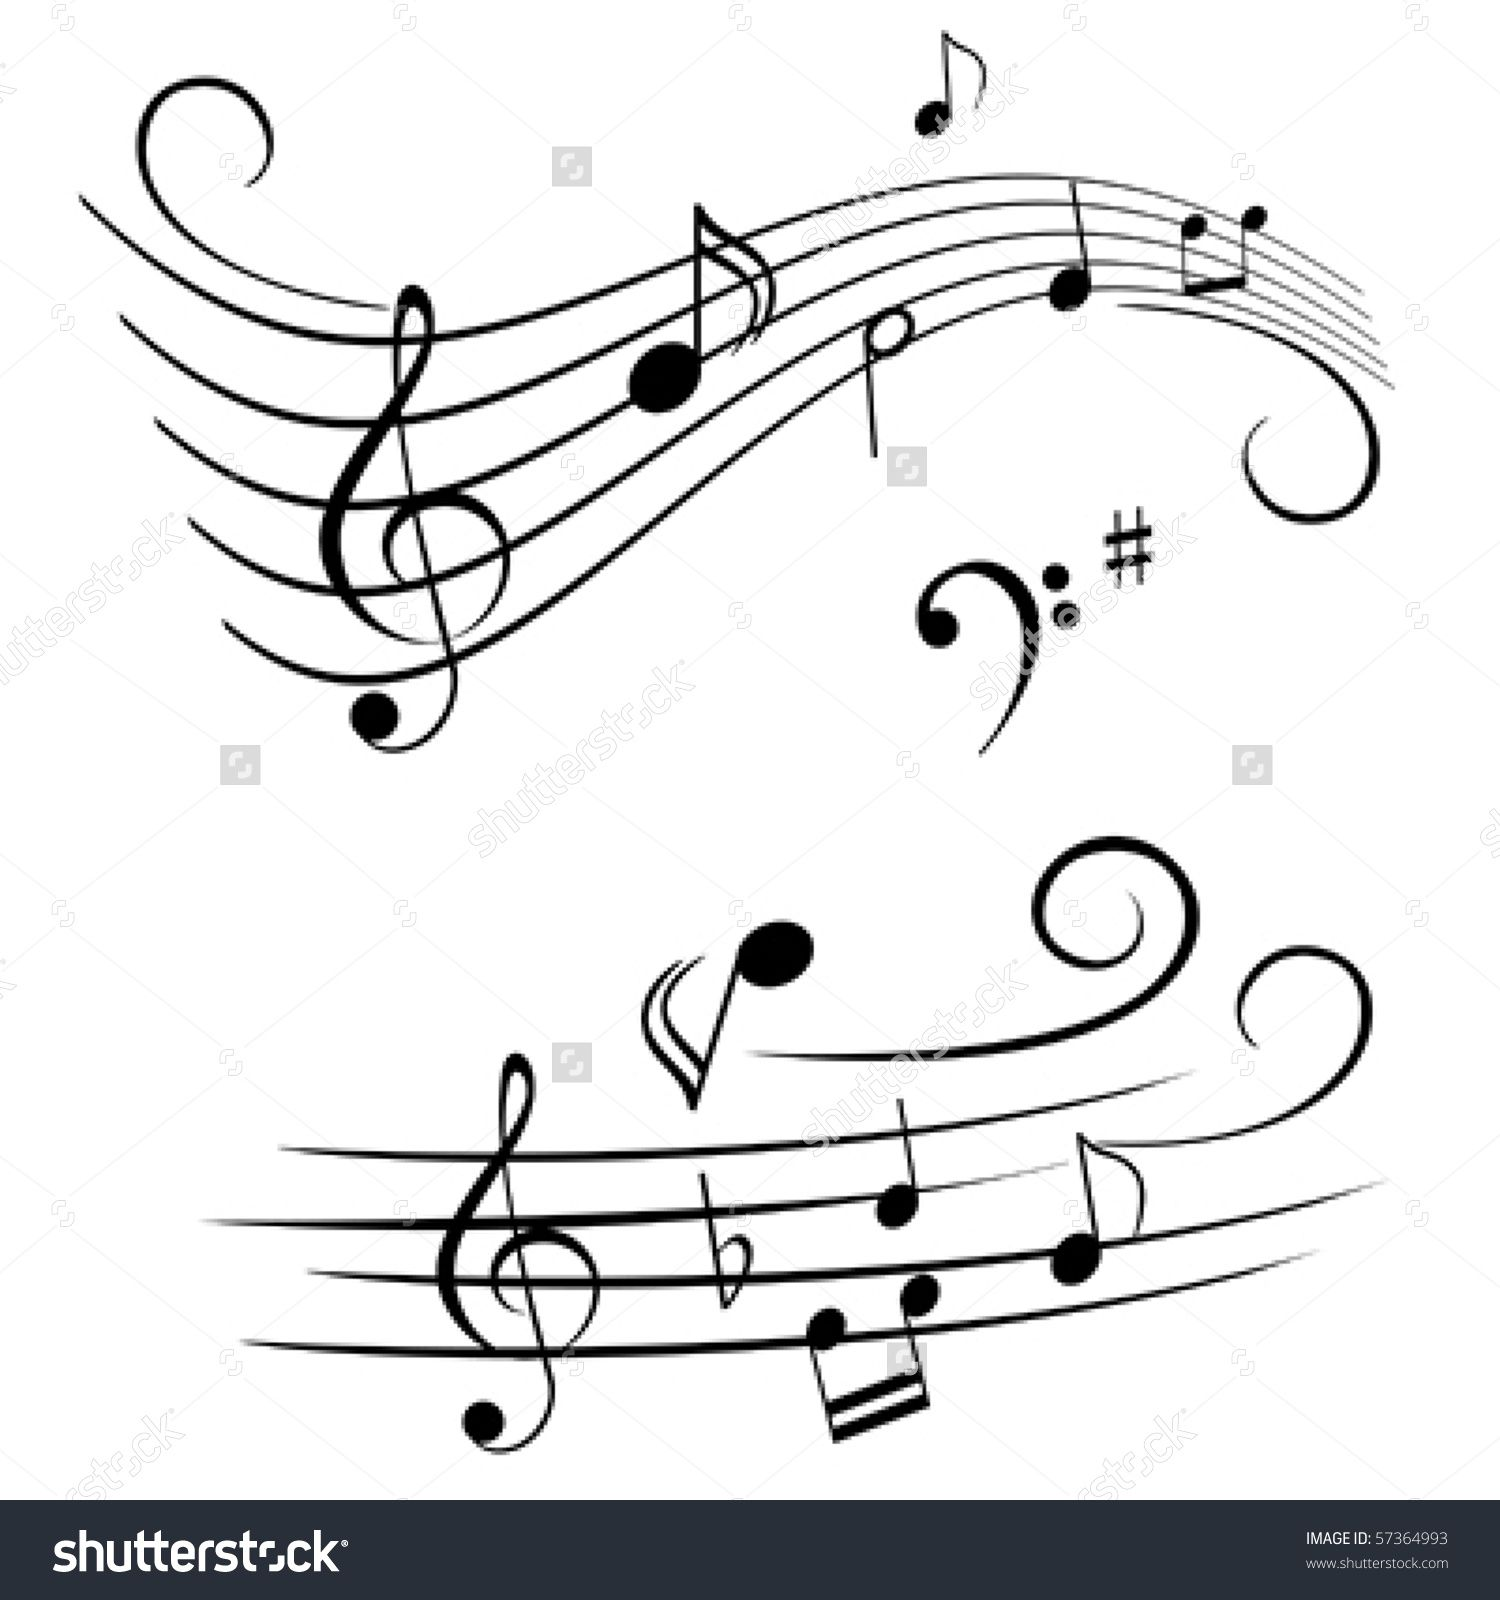 Image result for clipart free music staff abstract.